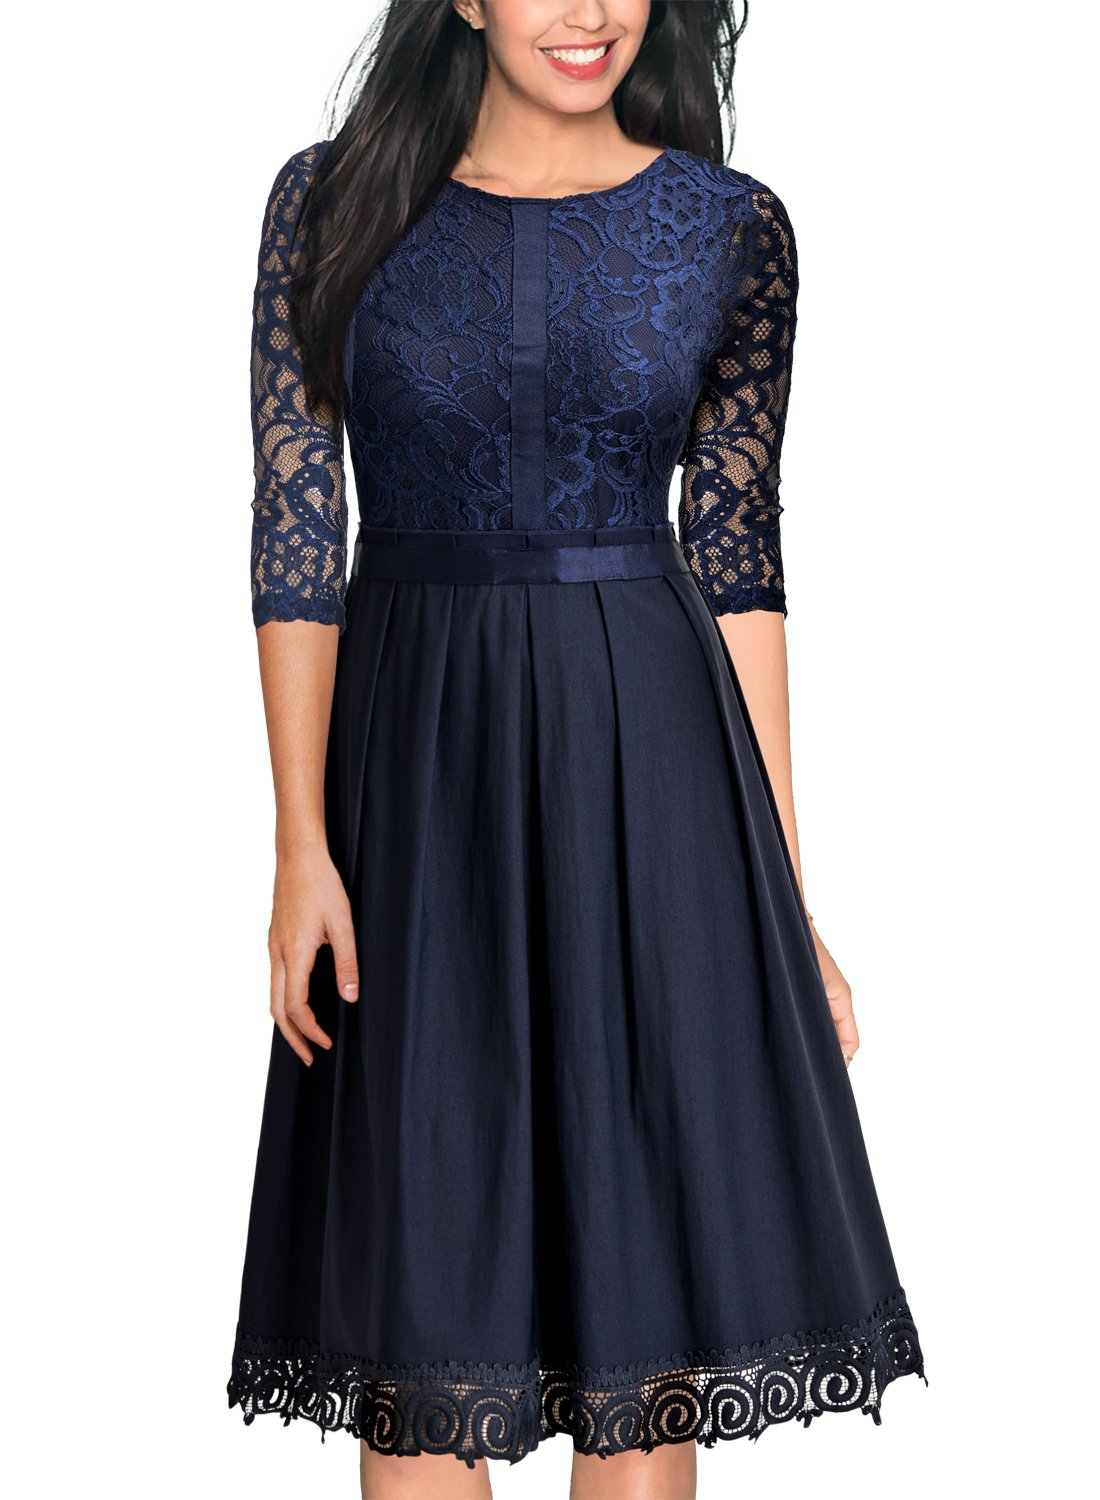 MissMay Women's Vintage Half Sleeve Floral Lace Cocktail Party Pleated Swing Dress Navy Blue X-Large